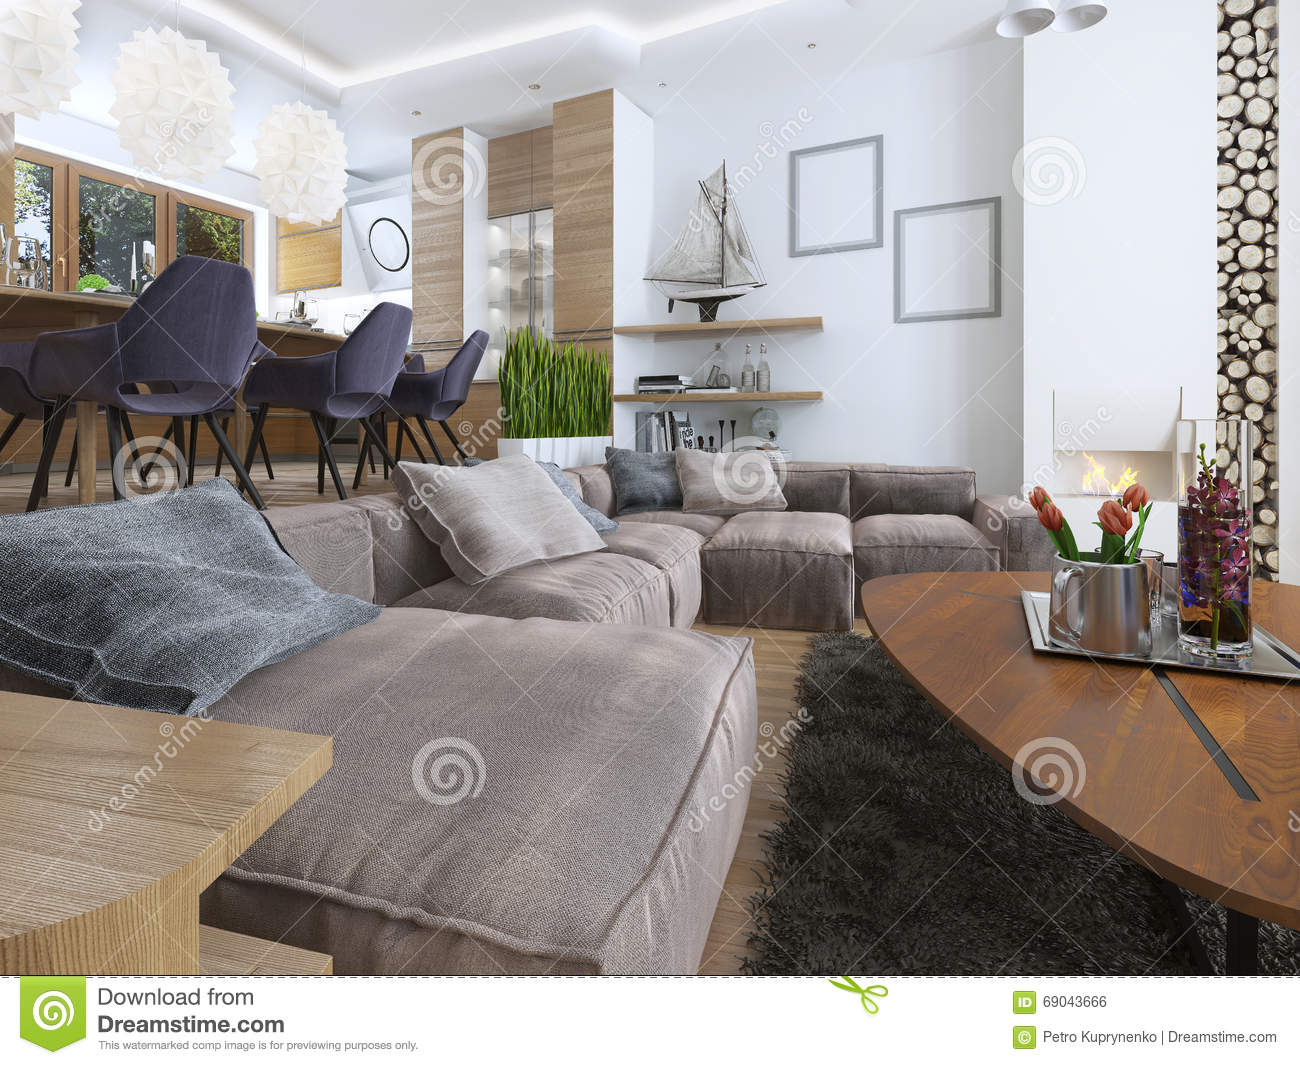 Modern Living Room In A Loft Style Royalty Free Stock Image